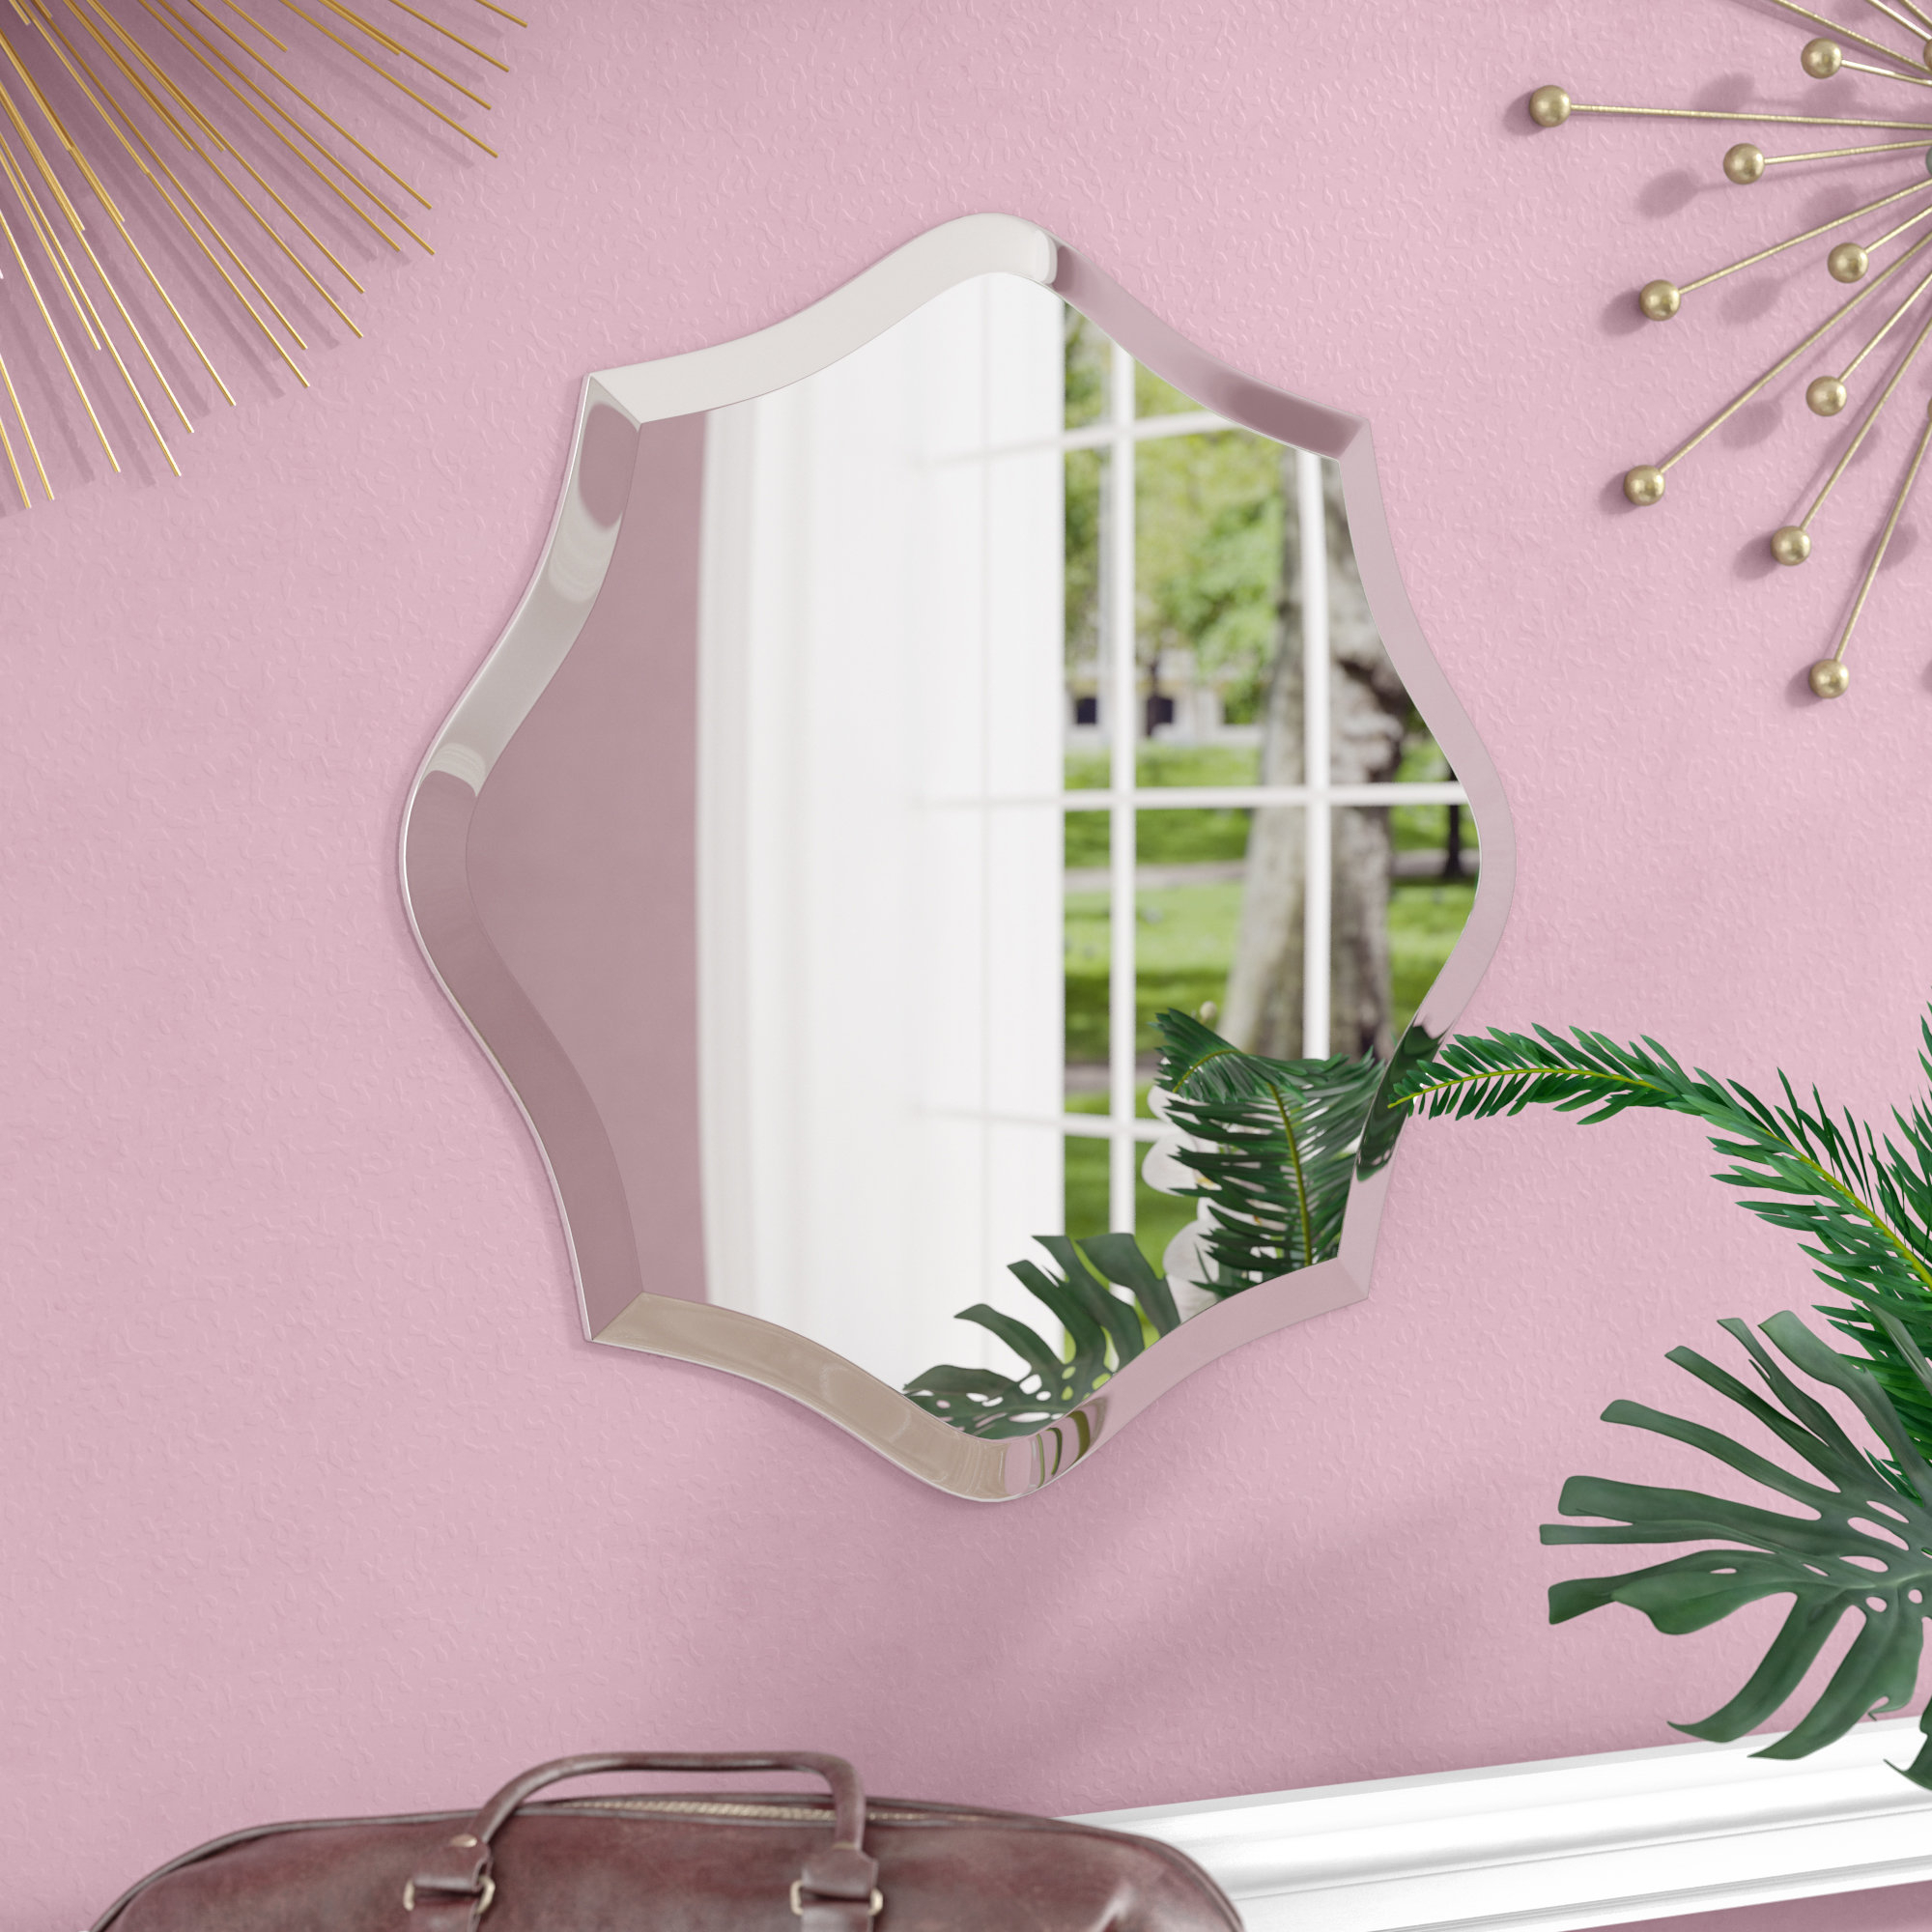 Willa Arlo Interiors Egor Accent Mirror & Reviews | Wayfair (Image 19 of 20)